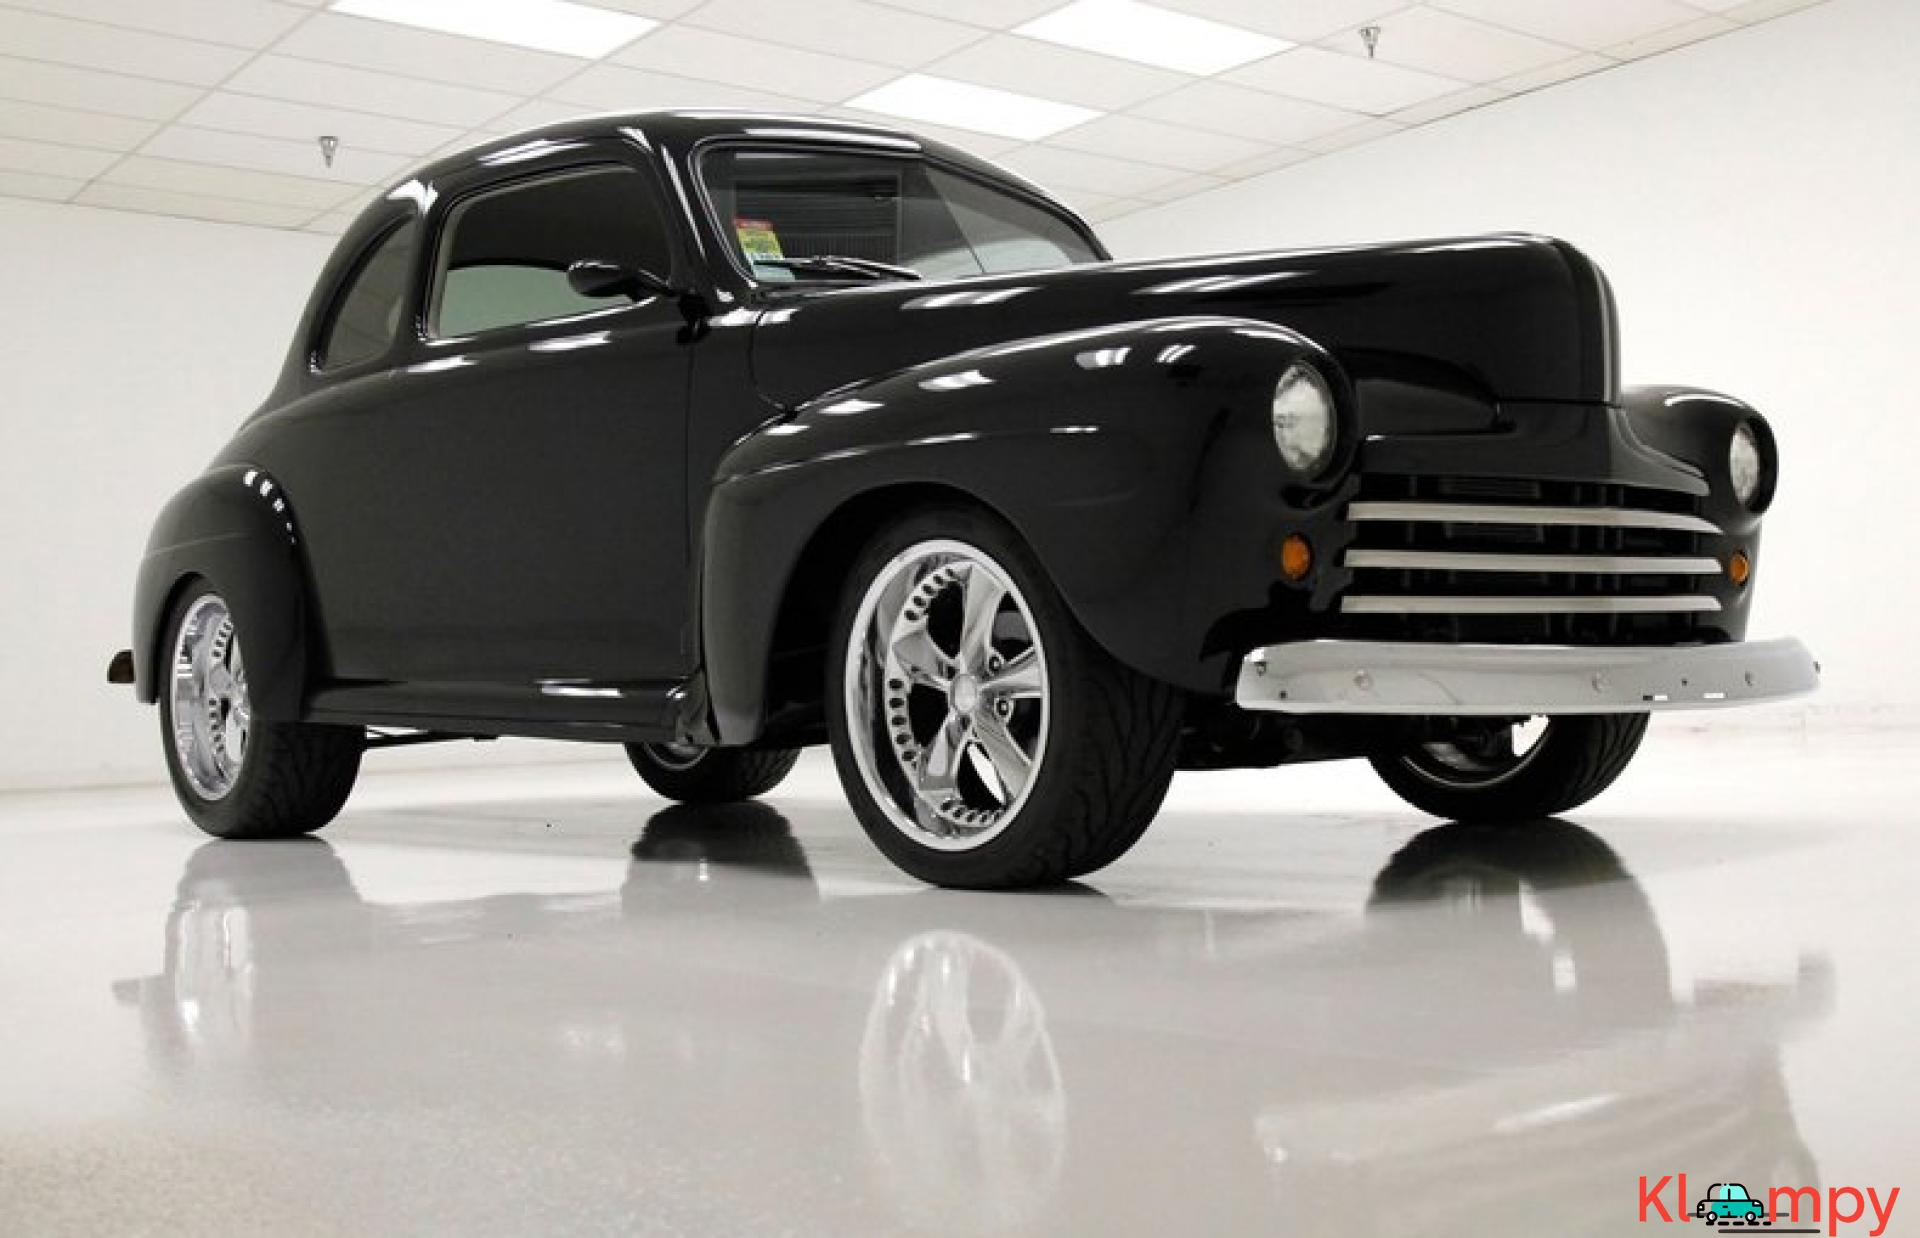 1948 Ford Super Deluxe Coupe 350 Powertrain - 6/20